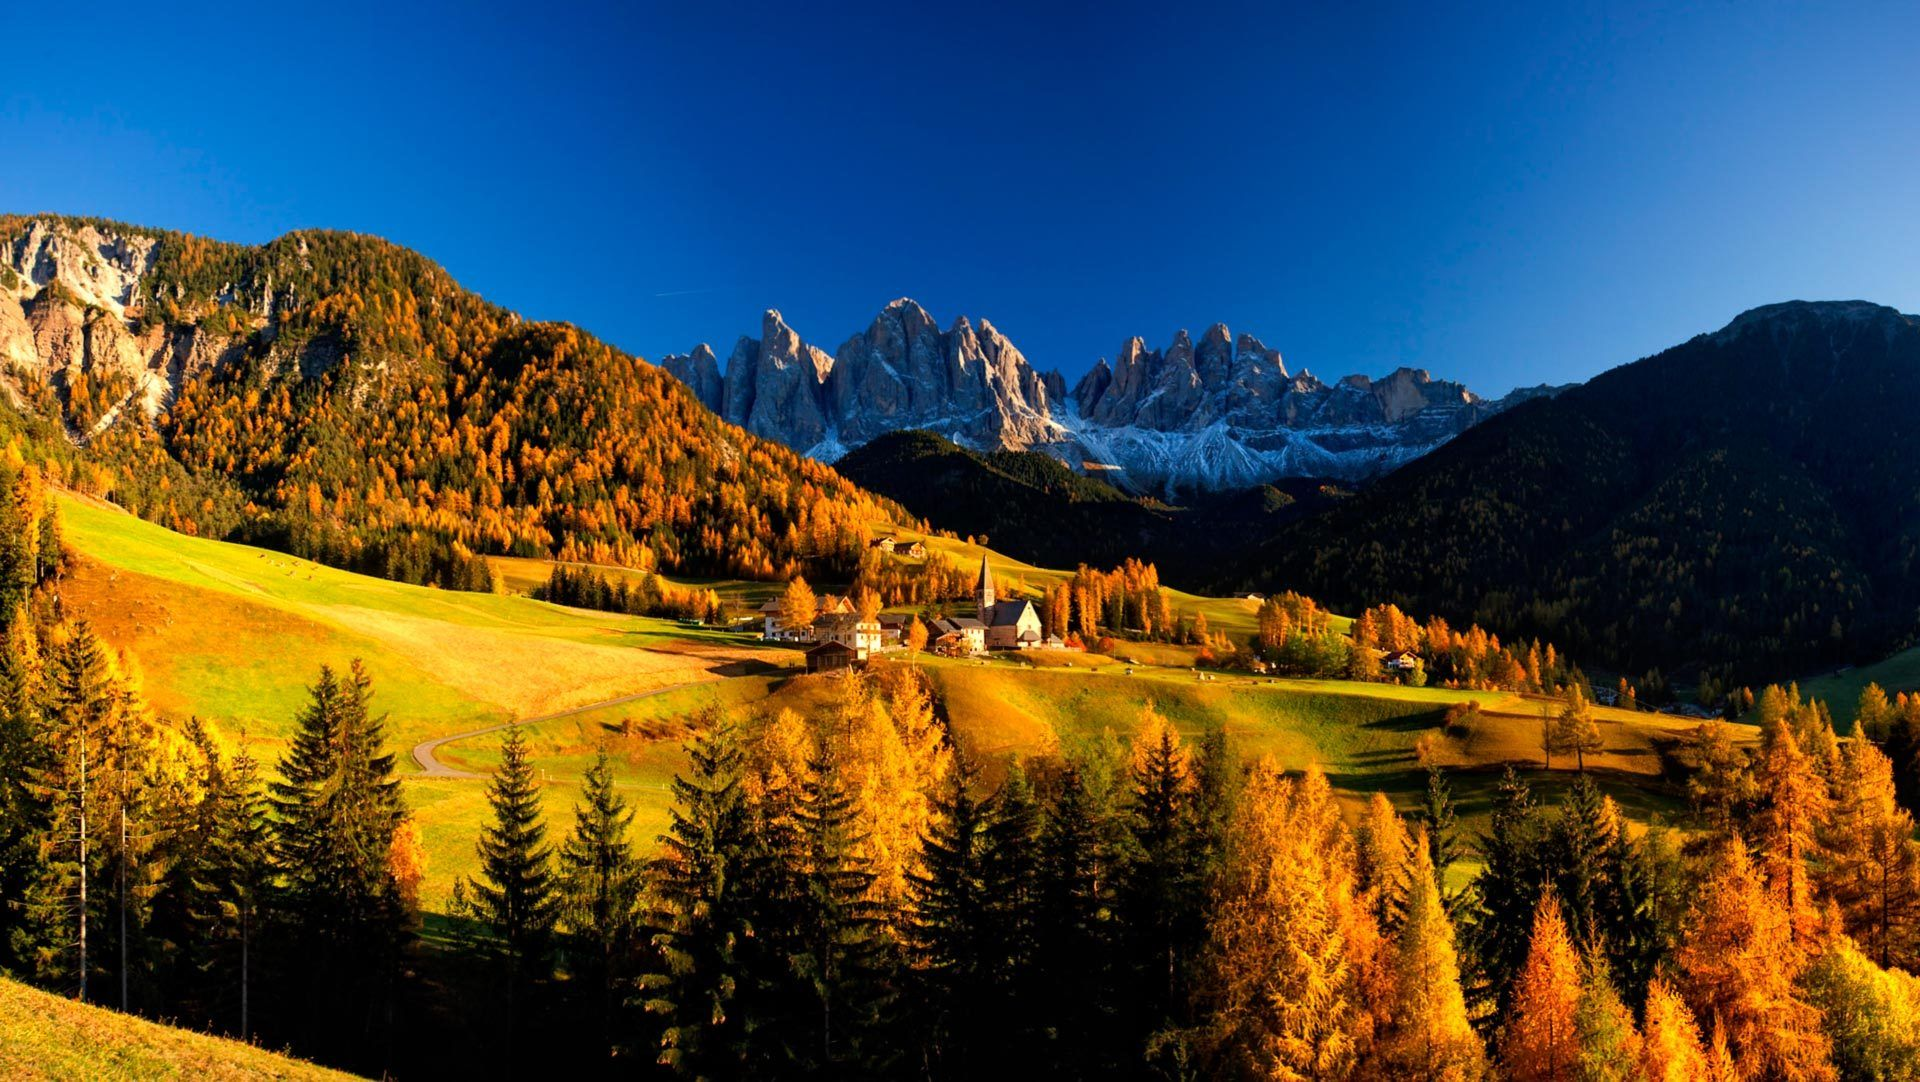 Church of St. Magdalena Val di Funes, Italy Italy